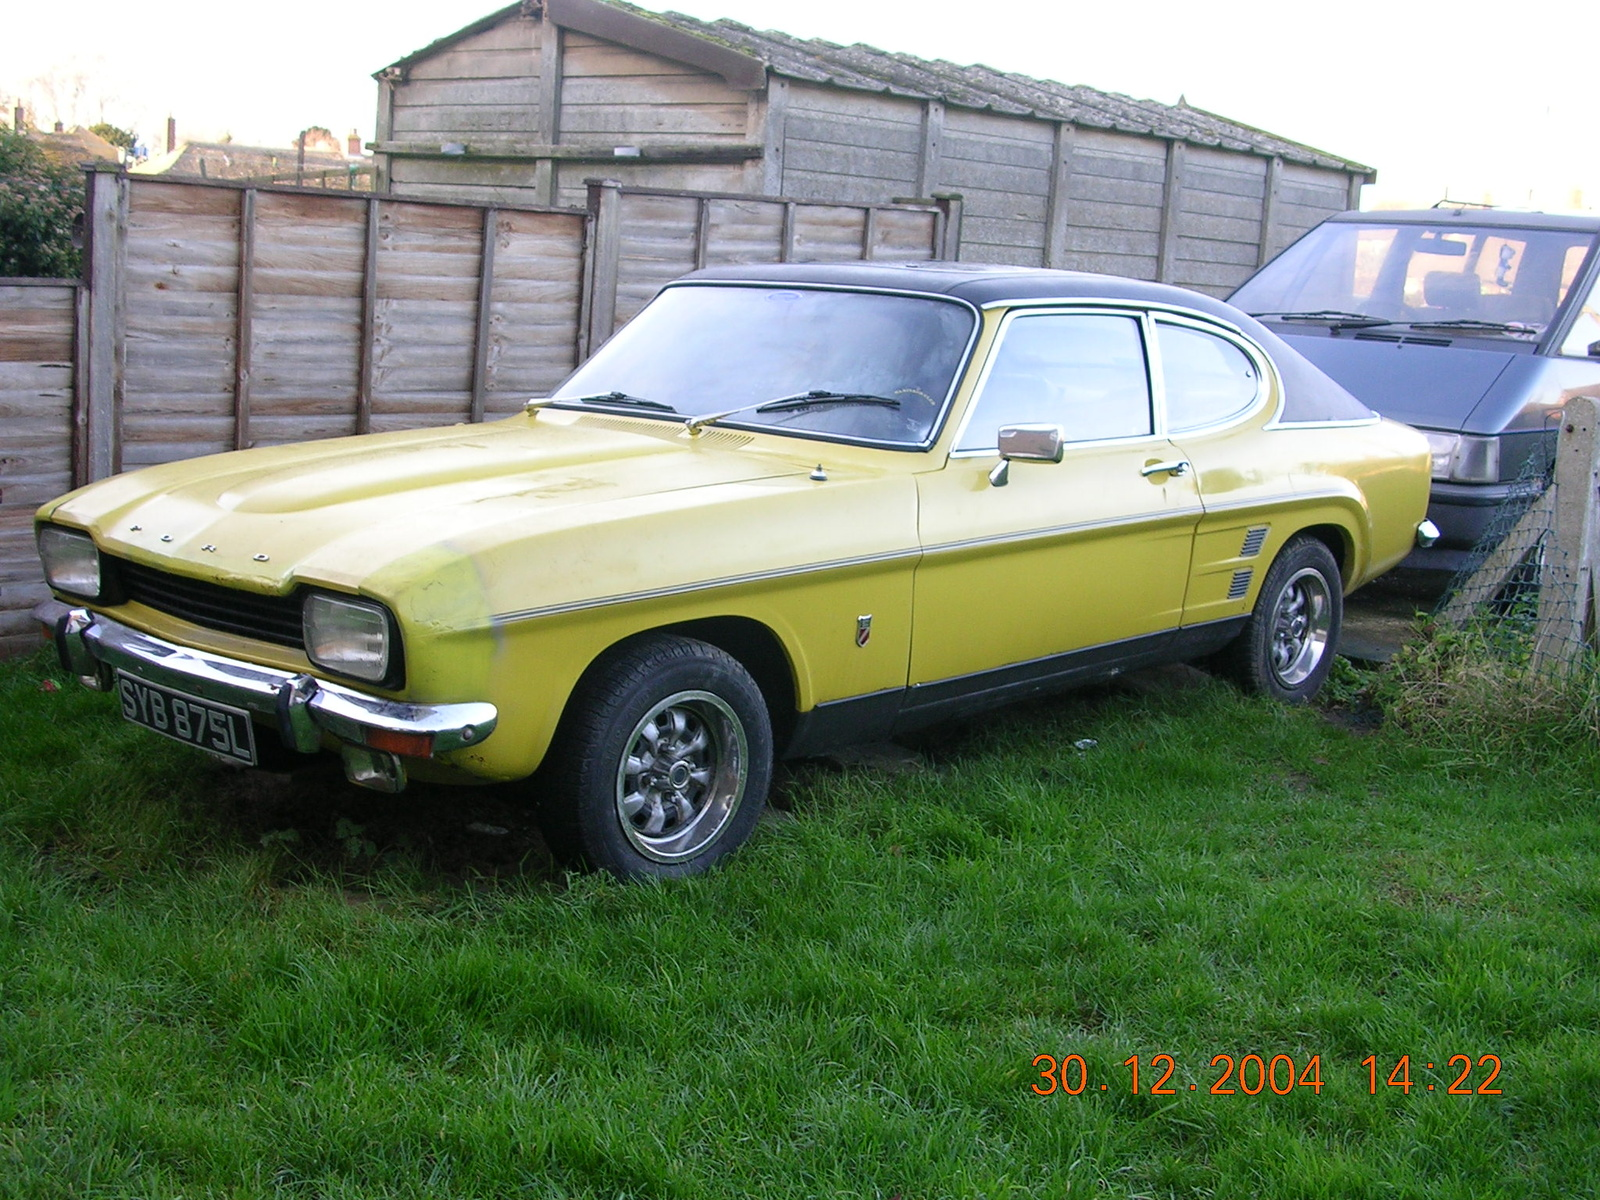 Ford Capri 1974 photo - 3